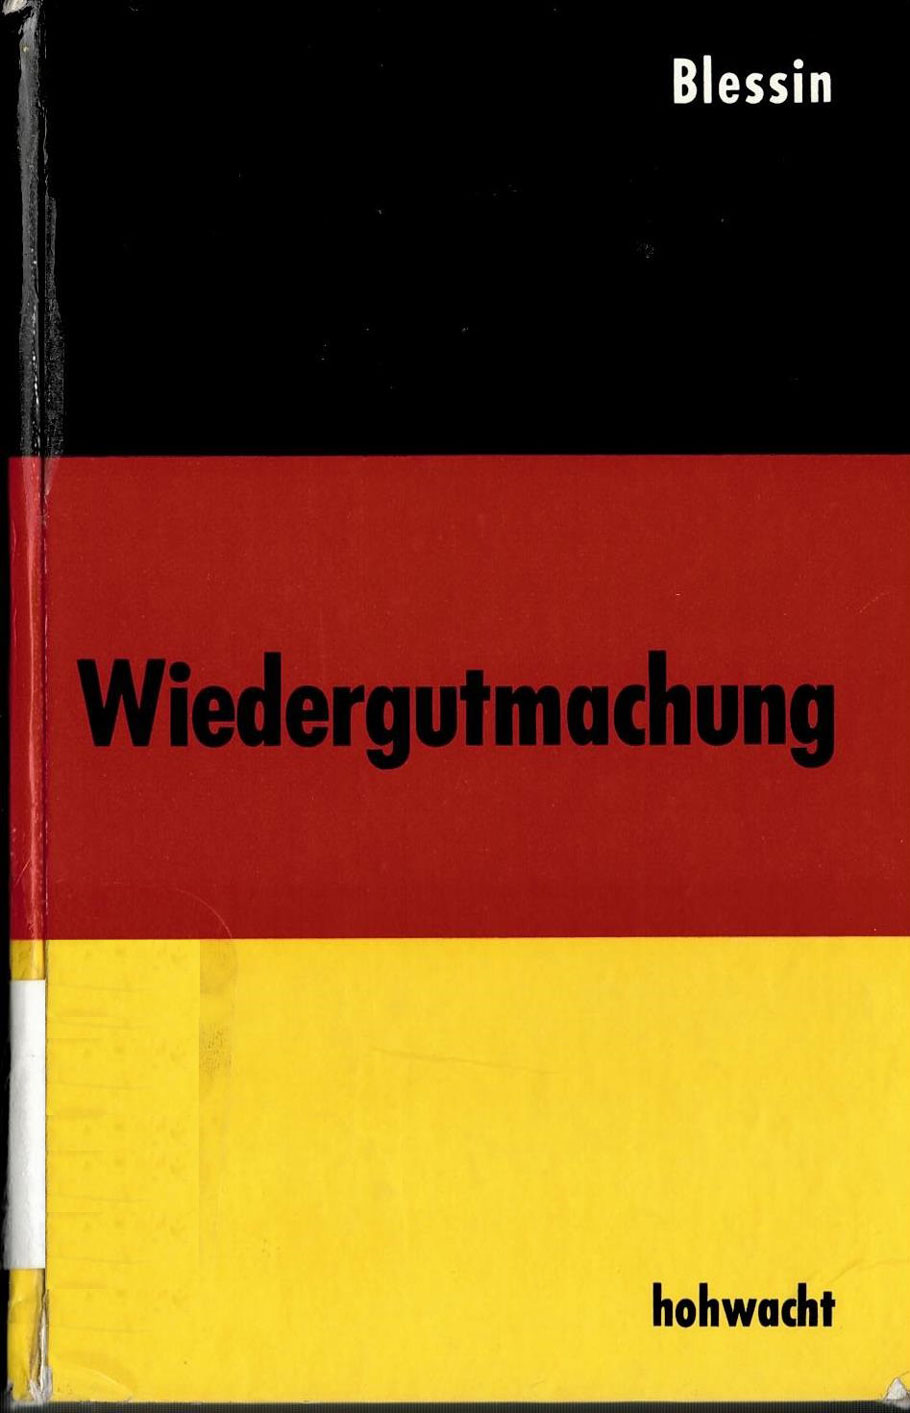 Official information from the German government regarding reparations, 1960